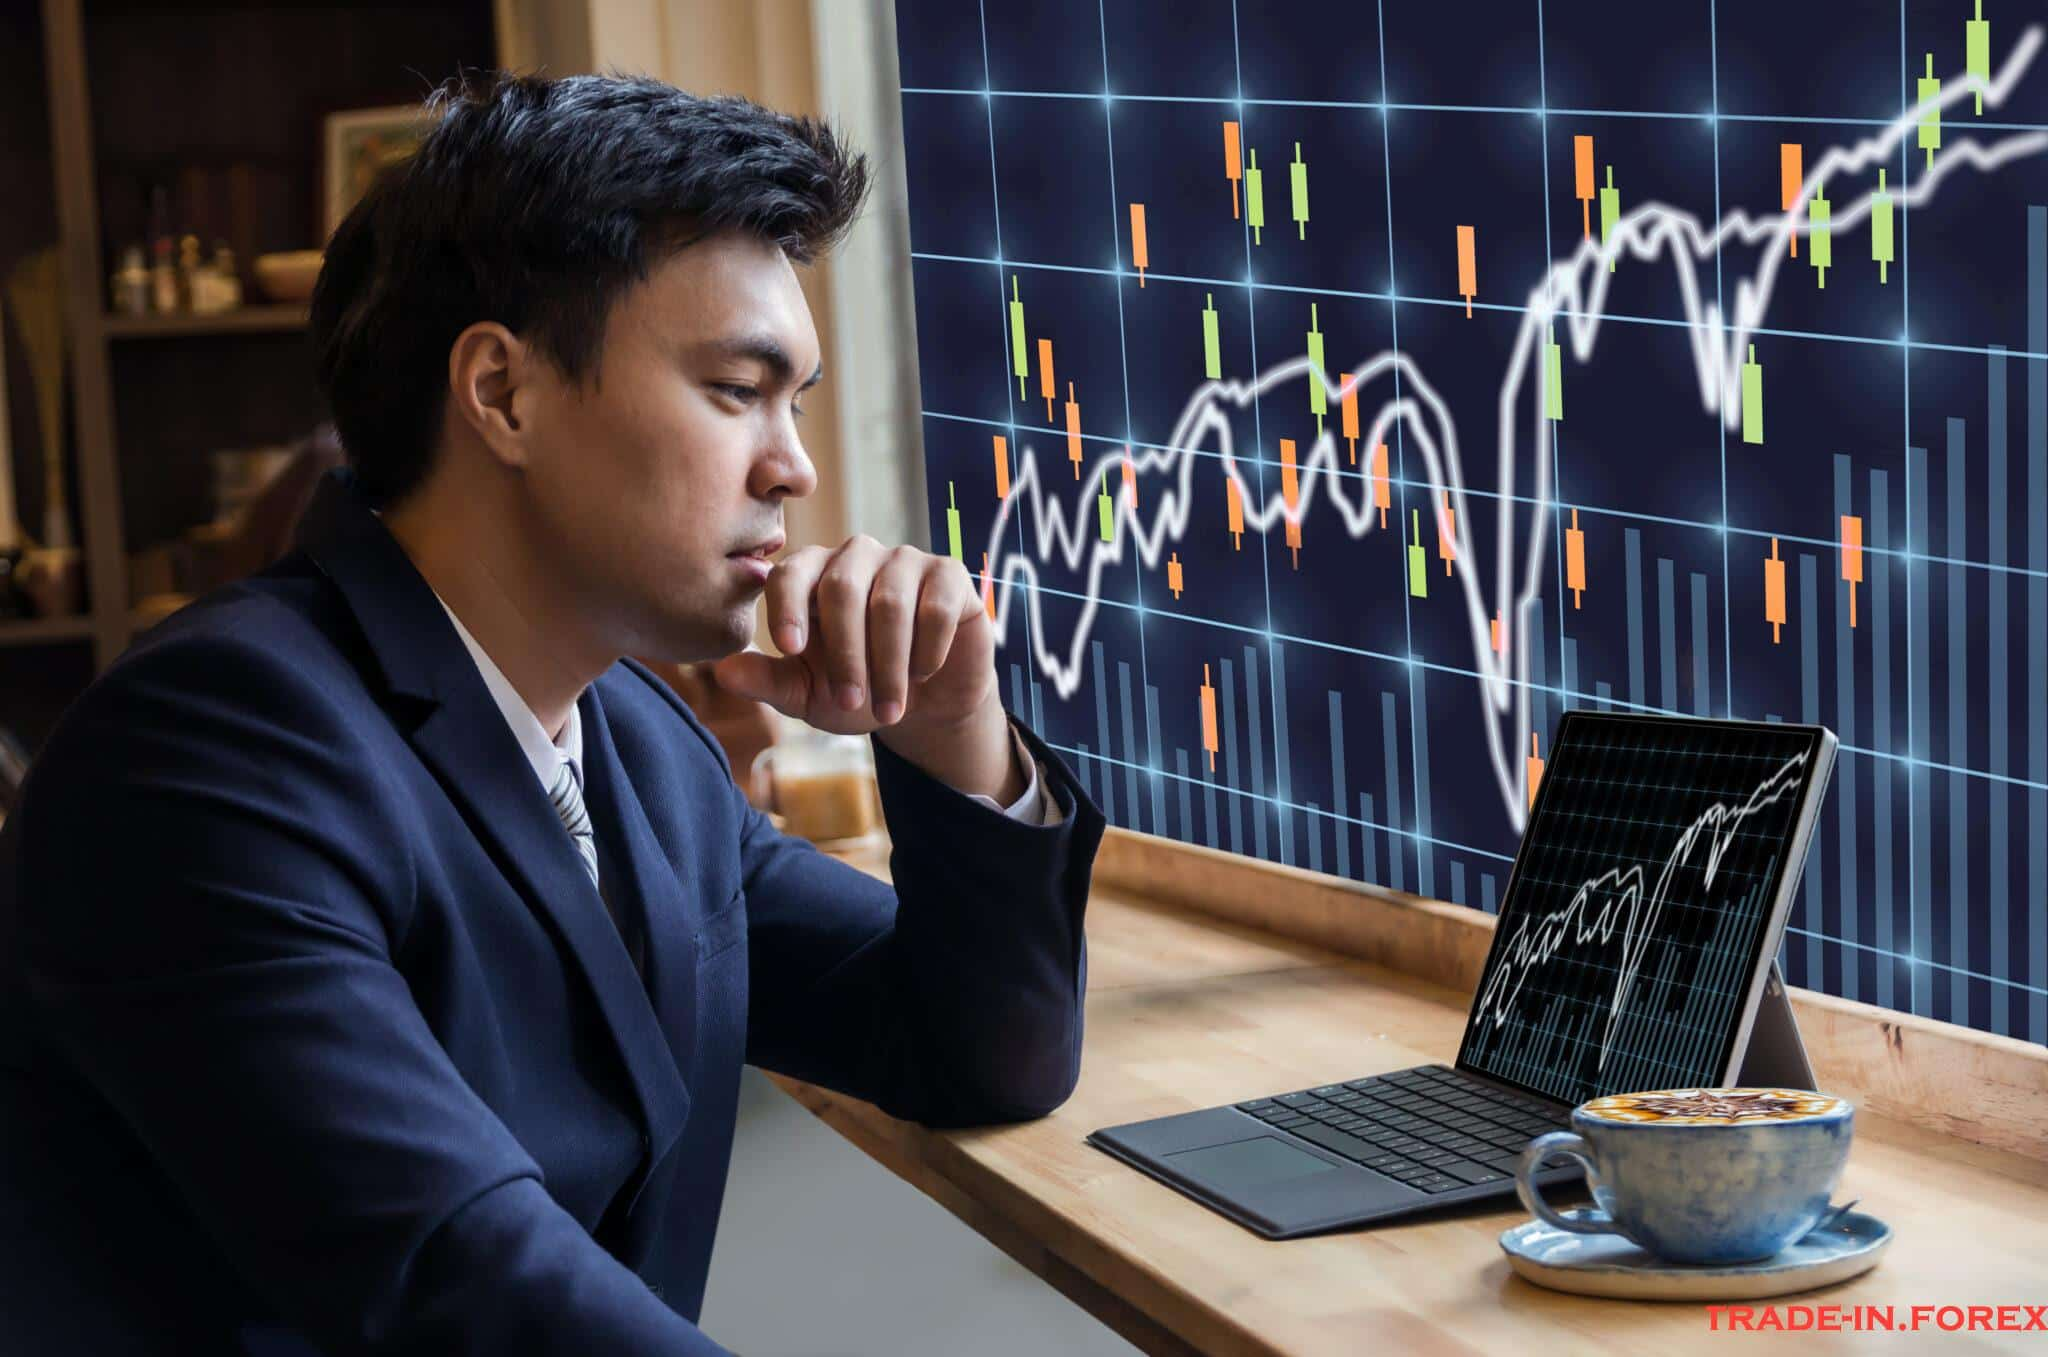 Trade in forex